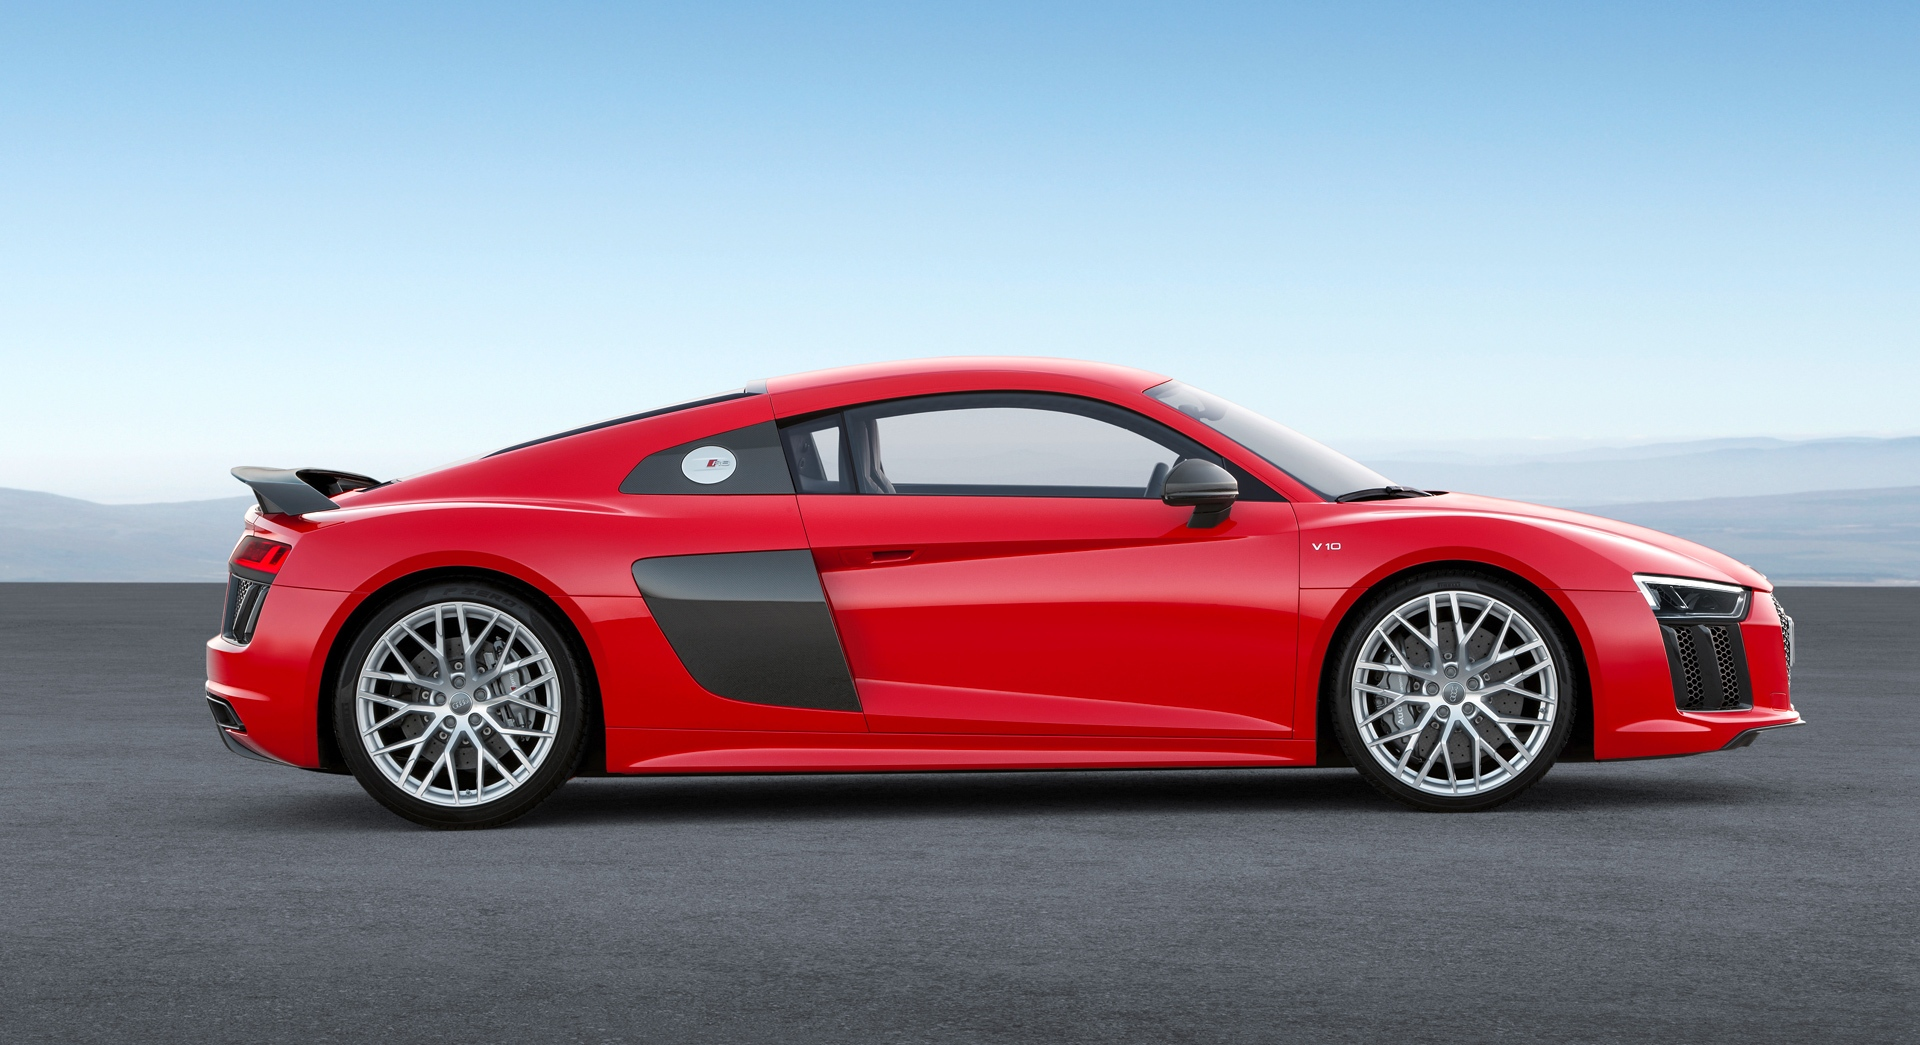 Audi R8 V10 Plus Red Sides Hd Desktop Wallpapers 4k Hd